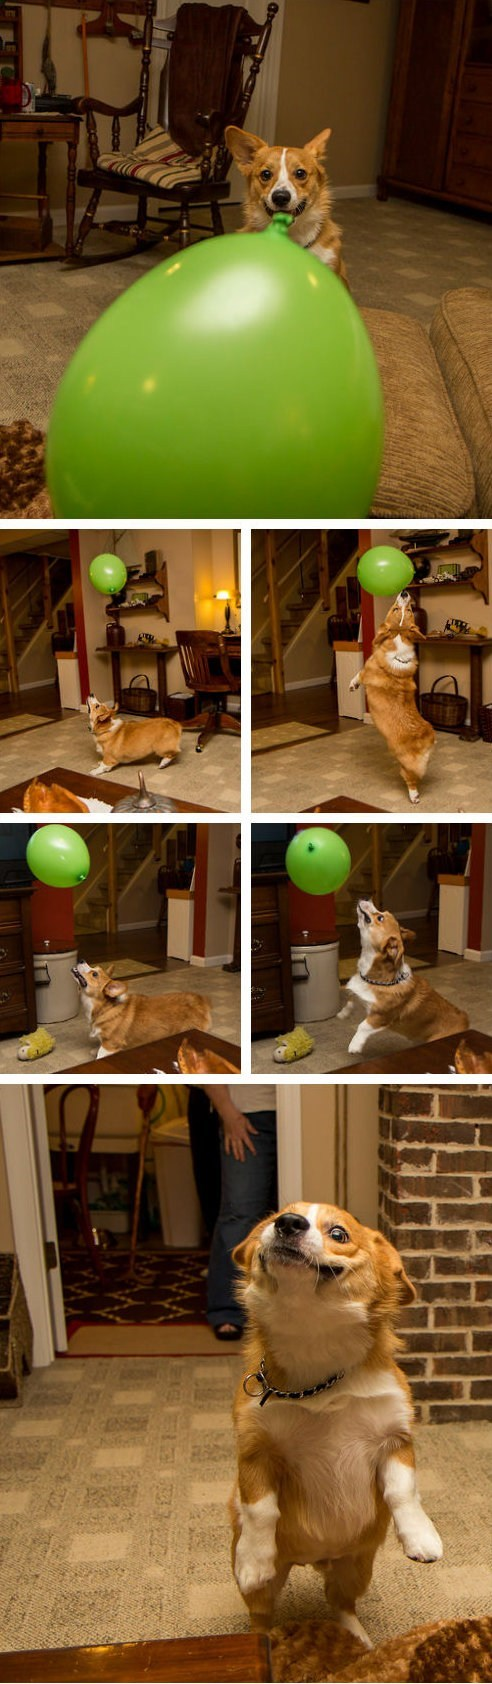 otis balloon-chasing dog green balloon corgi dogs - 6678050560